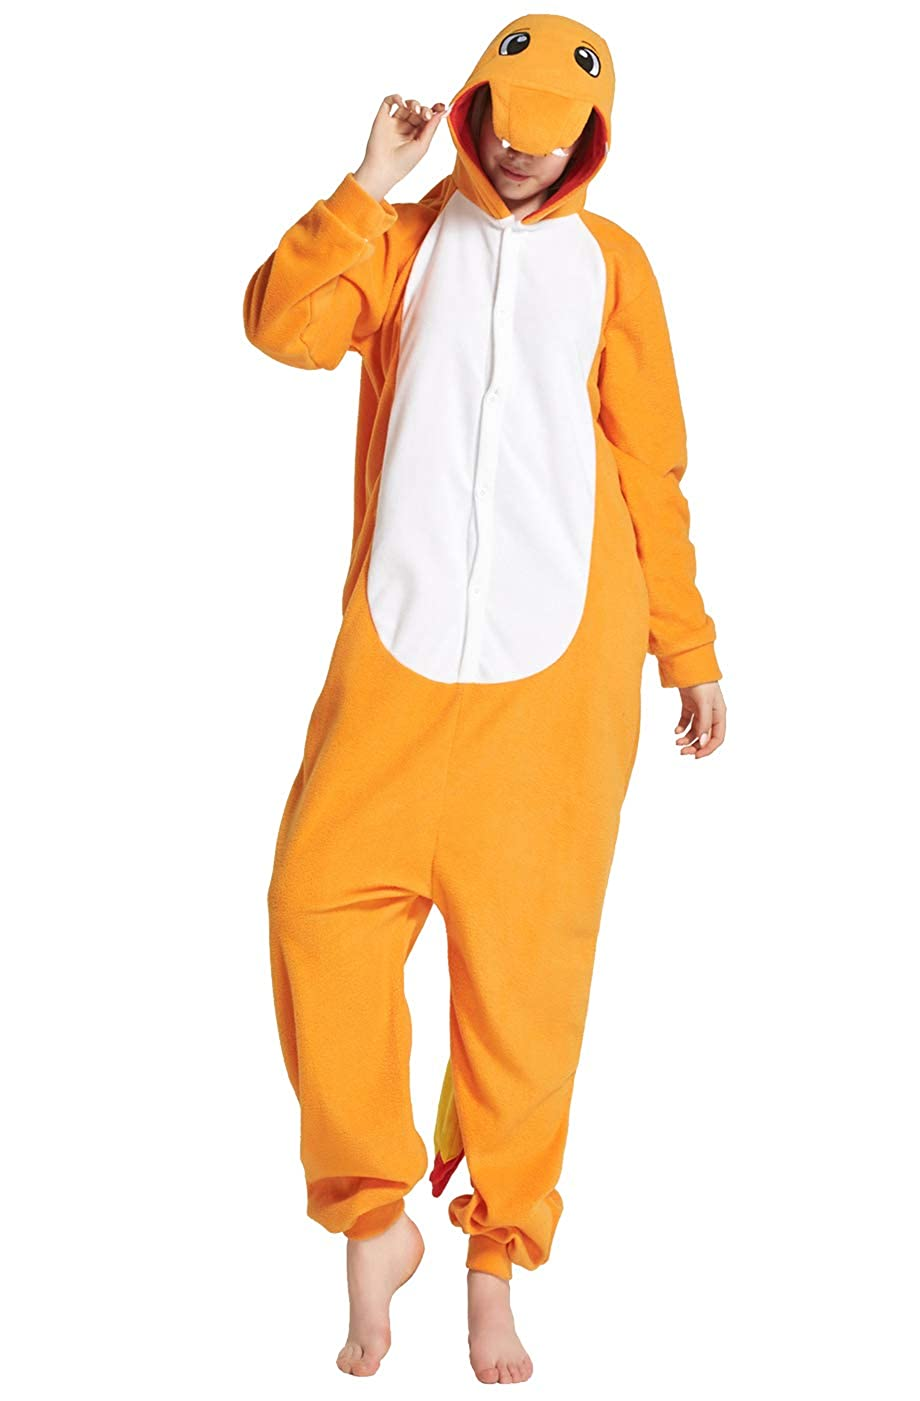 Apiidoo Halloween Christmas Adult Animal Pajama One Piece Cosplay Onesie Costume